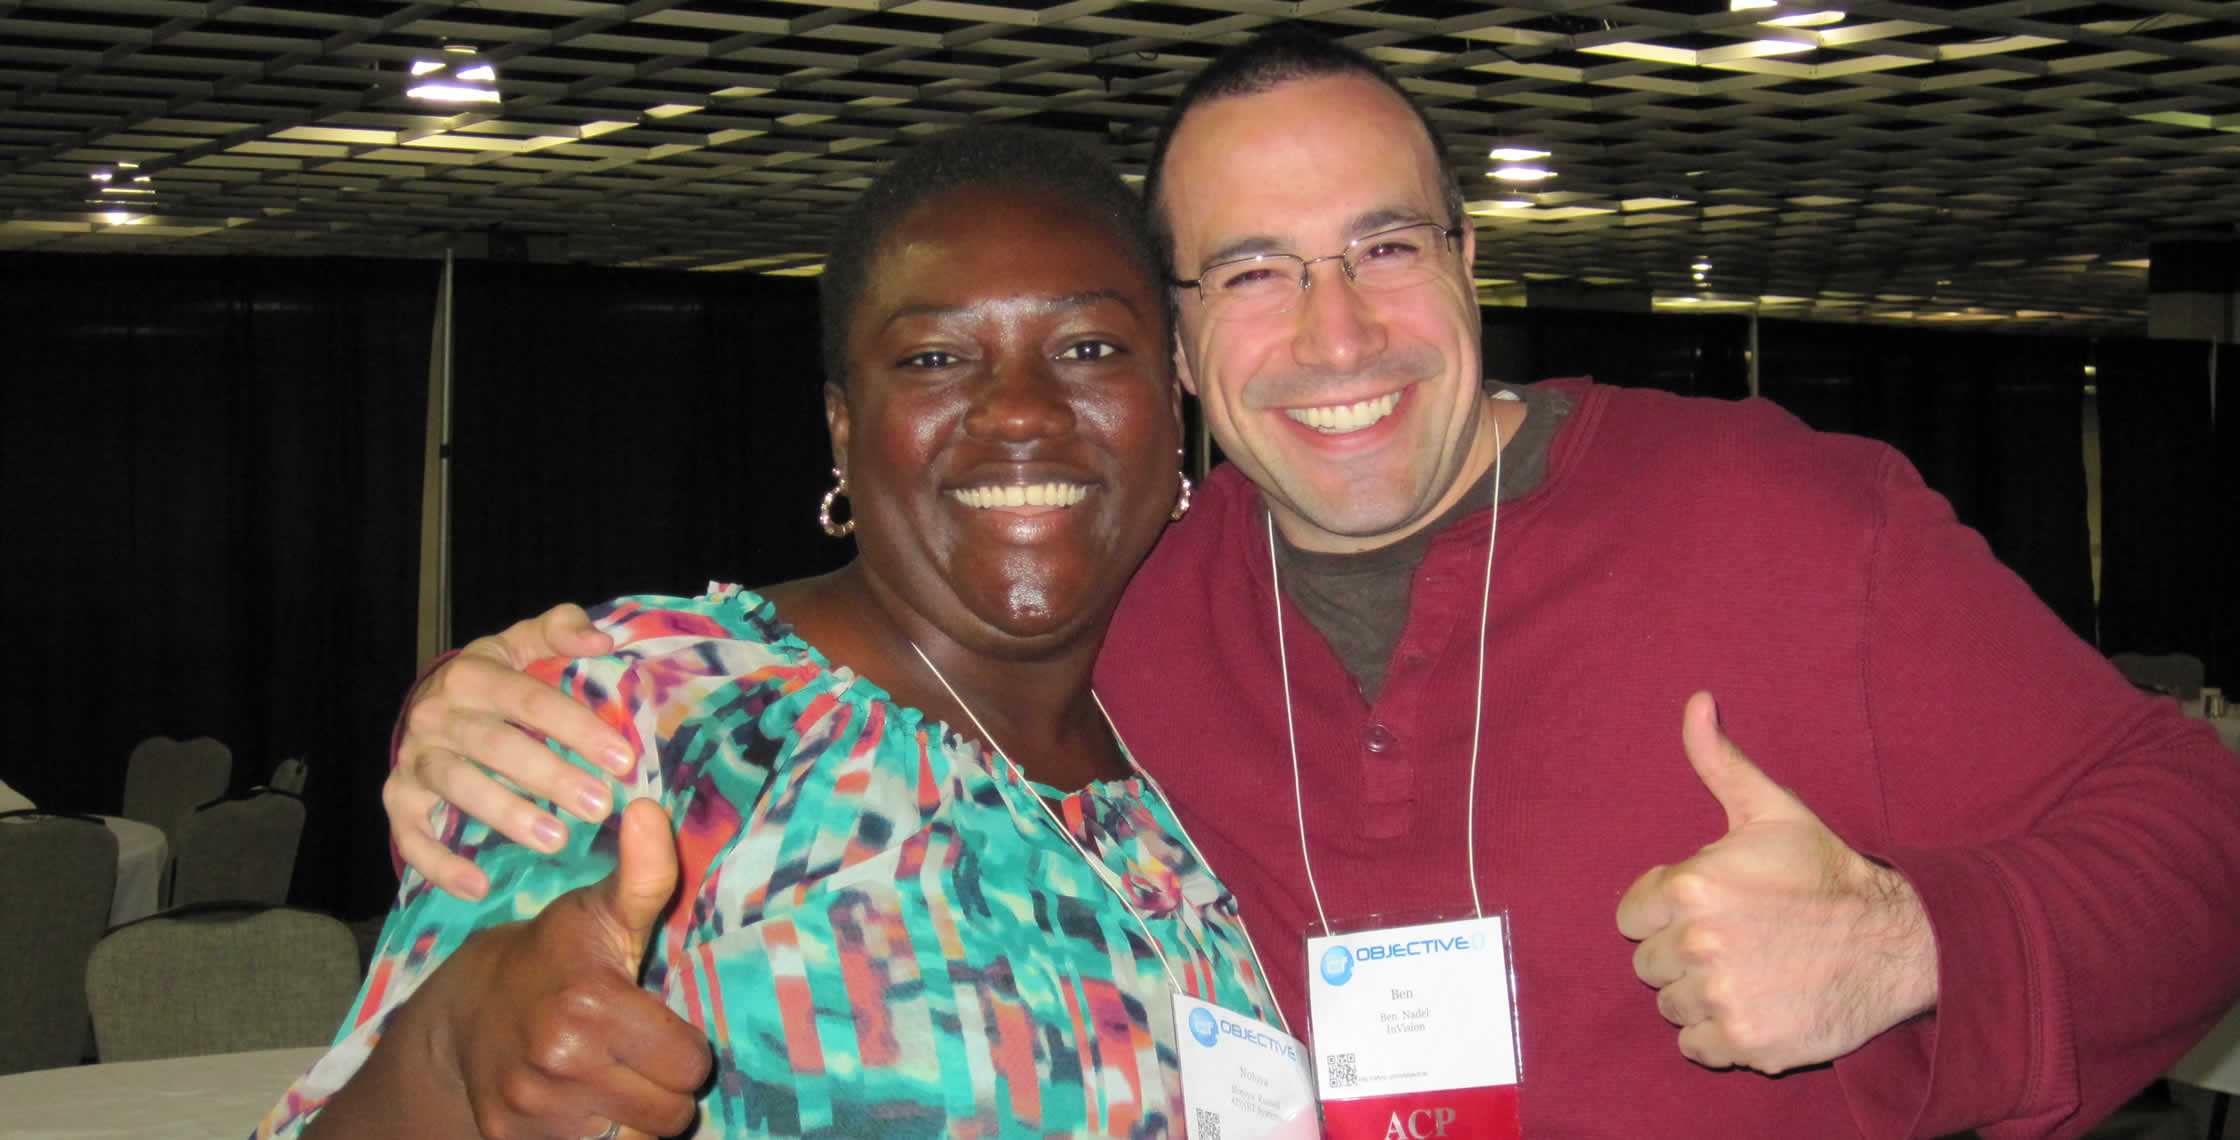 Ben Nadel at cf.Objective() 2012 (Minneapolis, MN) with: Notoya Russell